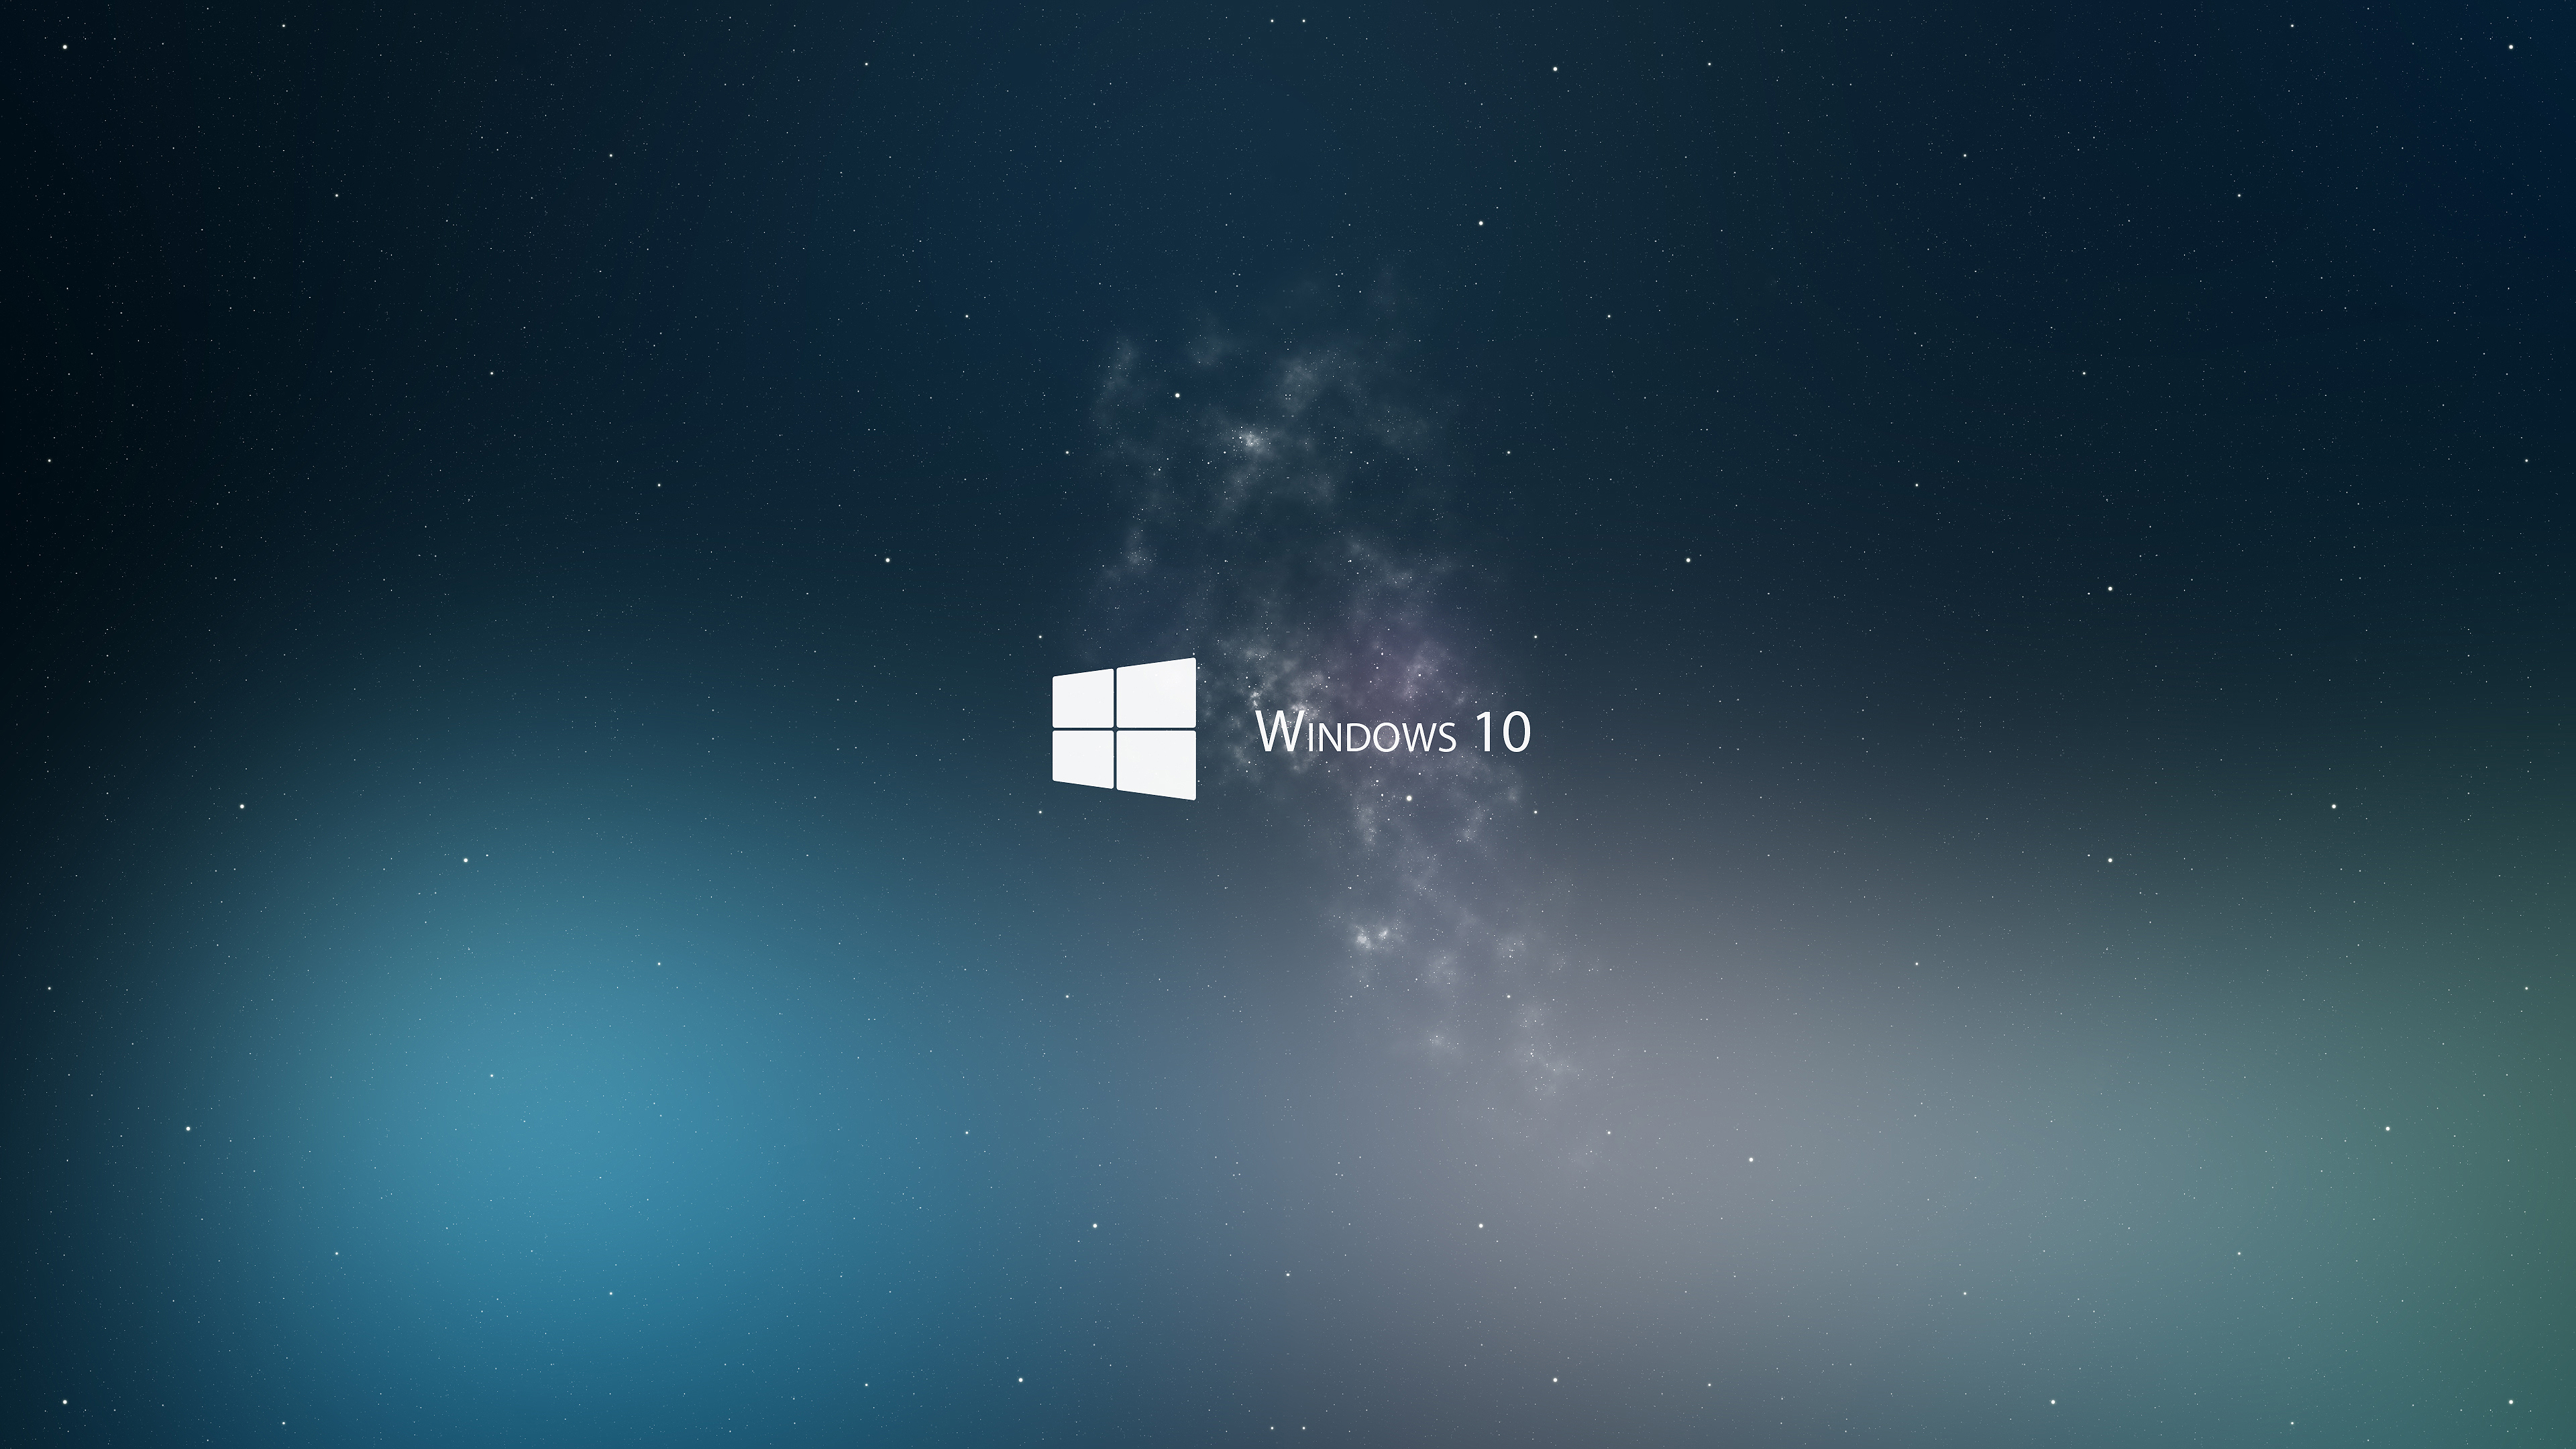 Windows 10 Wallpapers